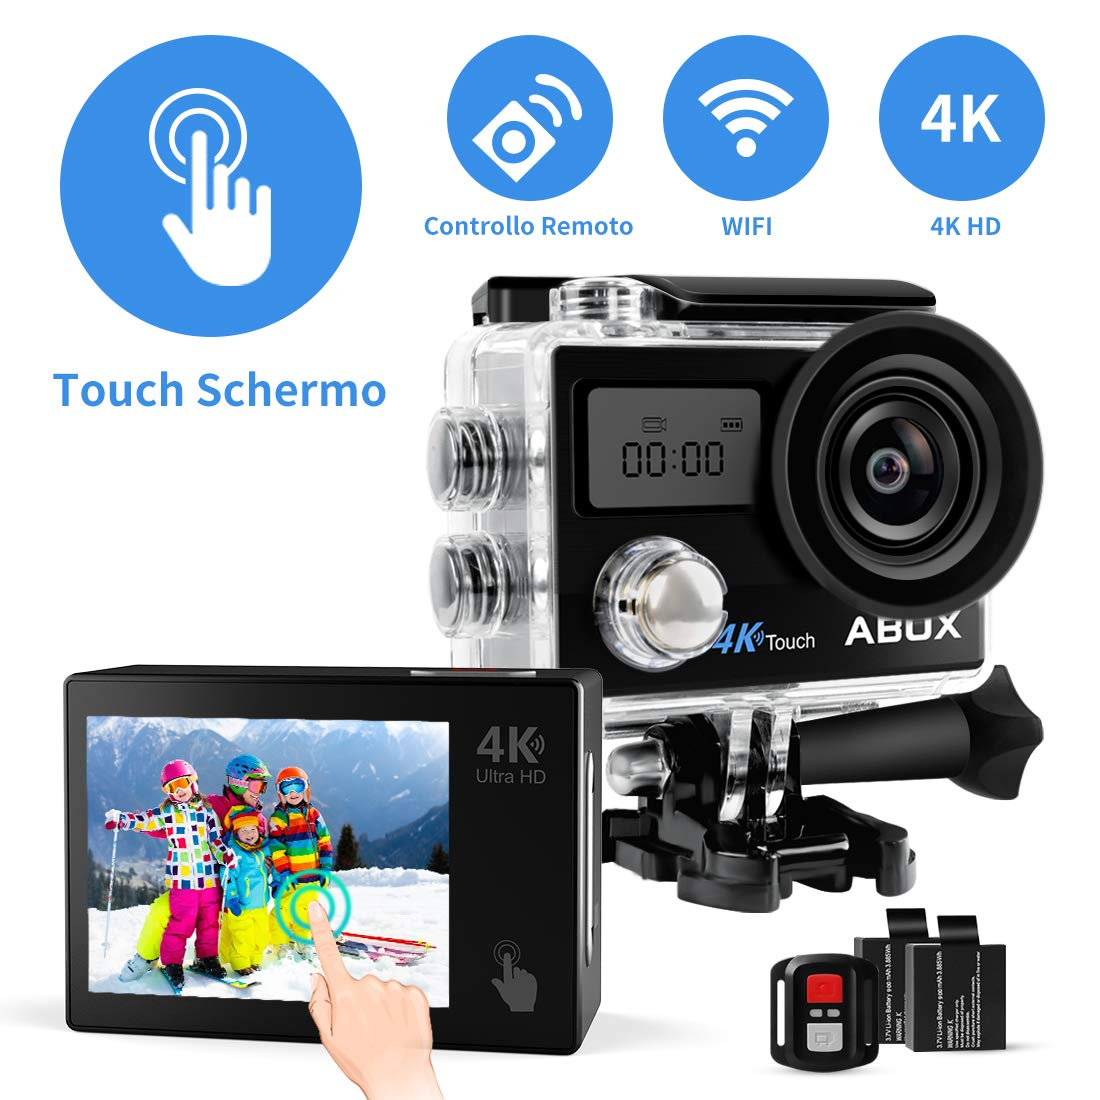 ABOX Action Cam 4K WiFi 608TA